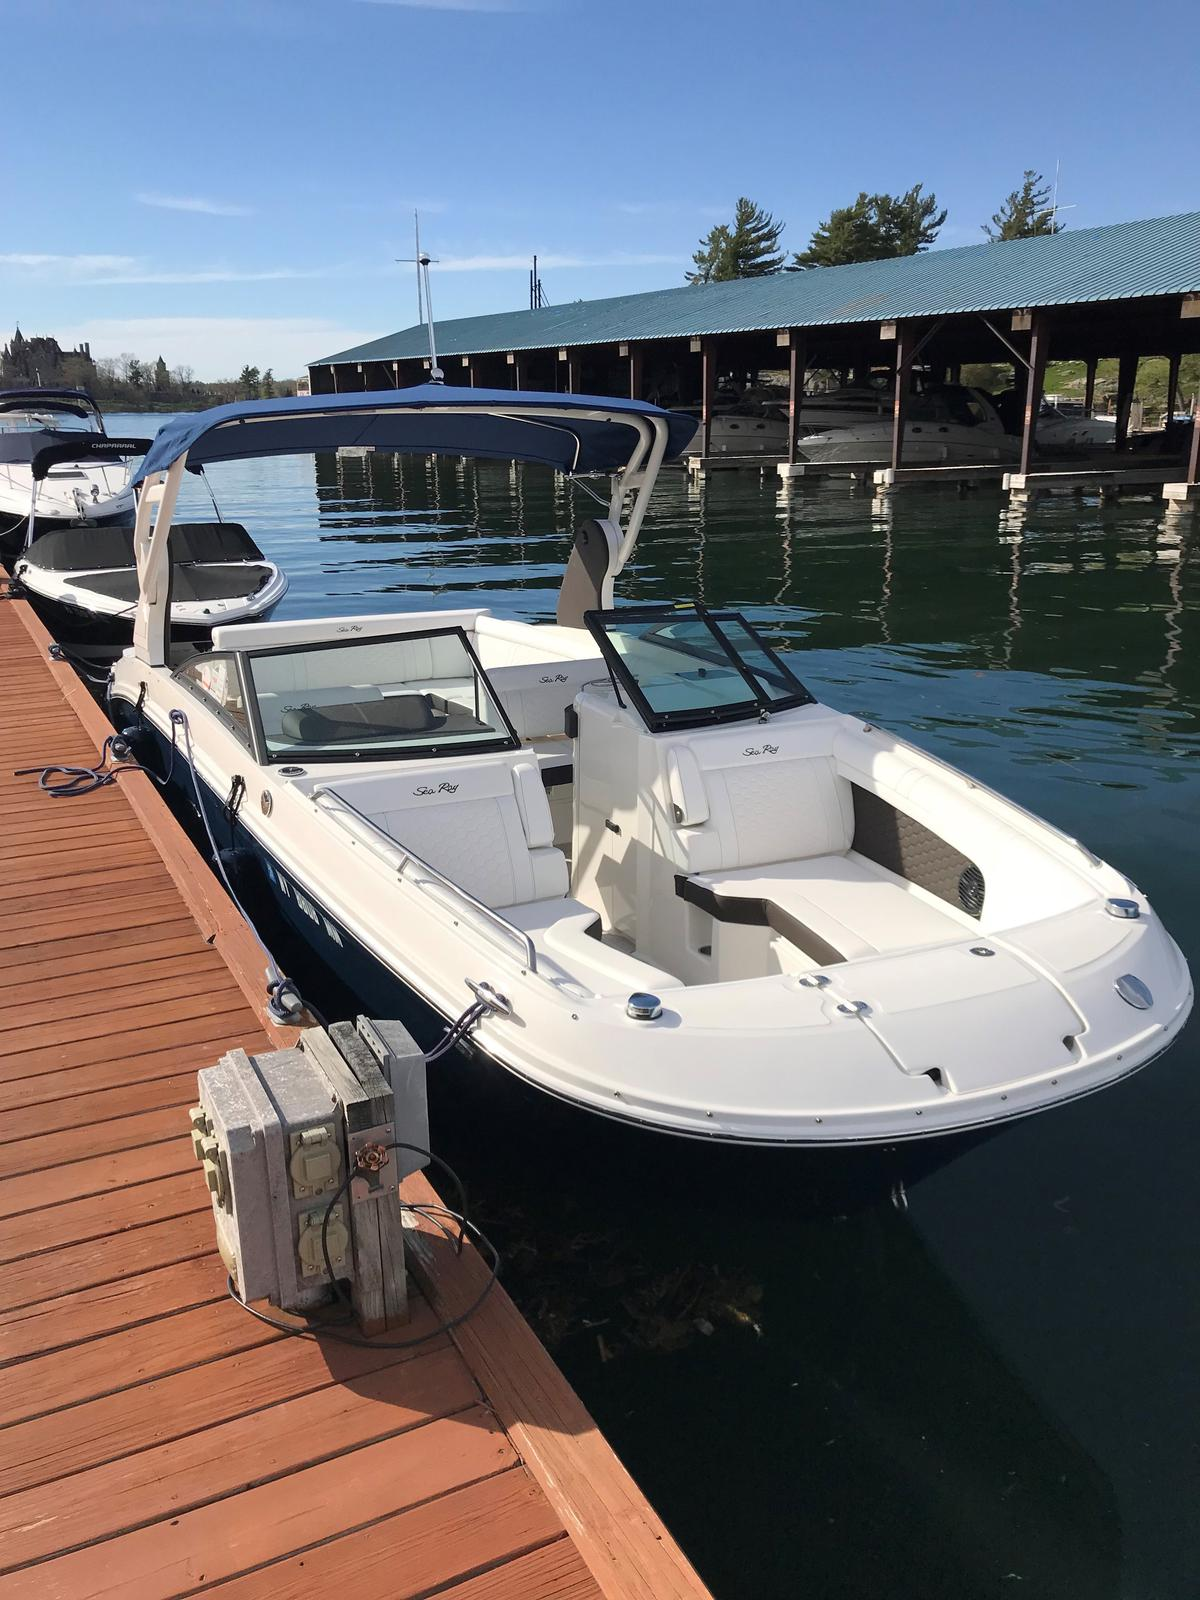 USED 2018 Sea Ray SDX 270 - Hutchinson's Boat Works